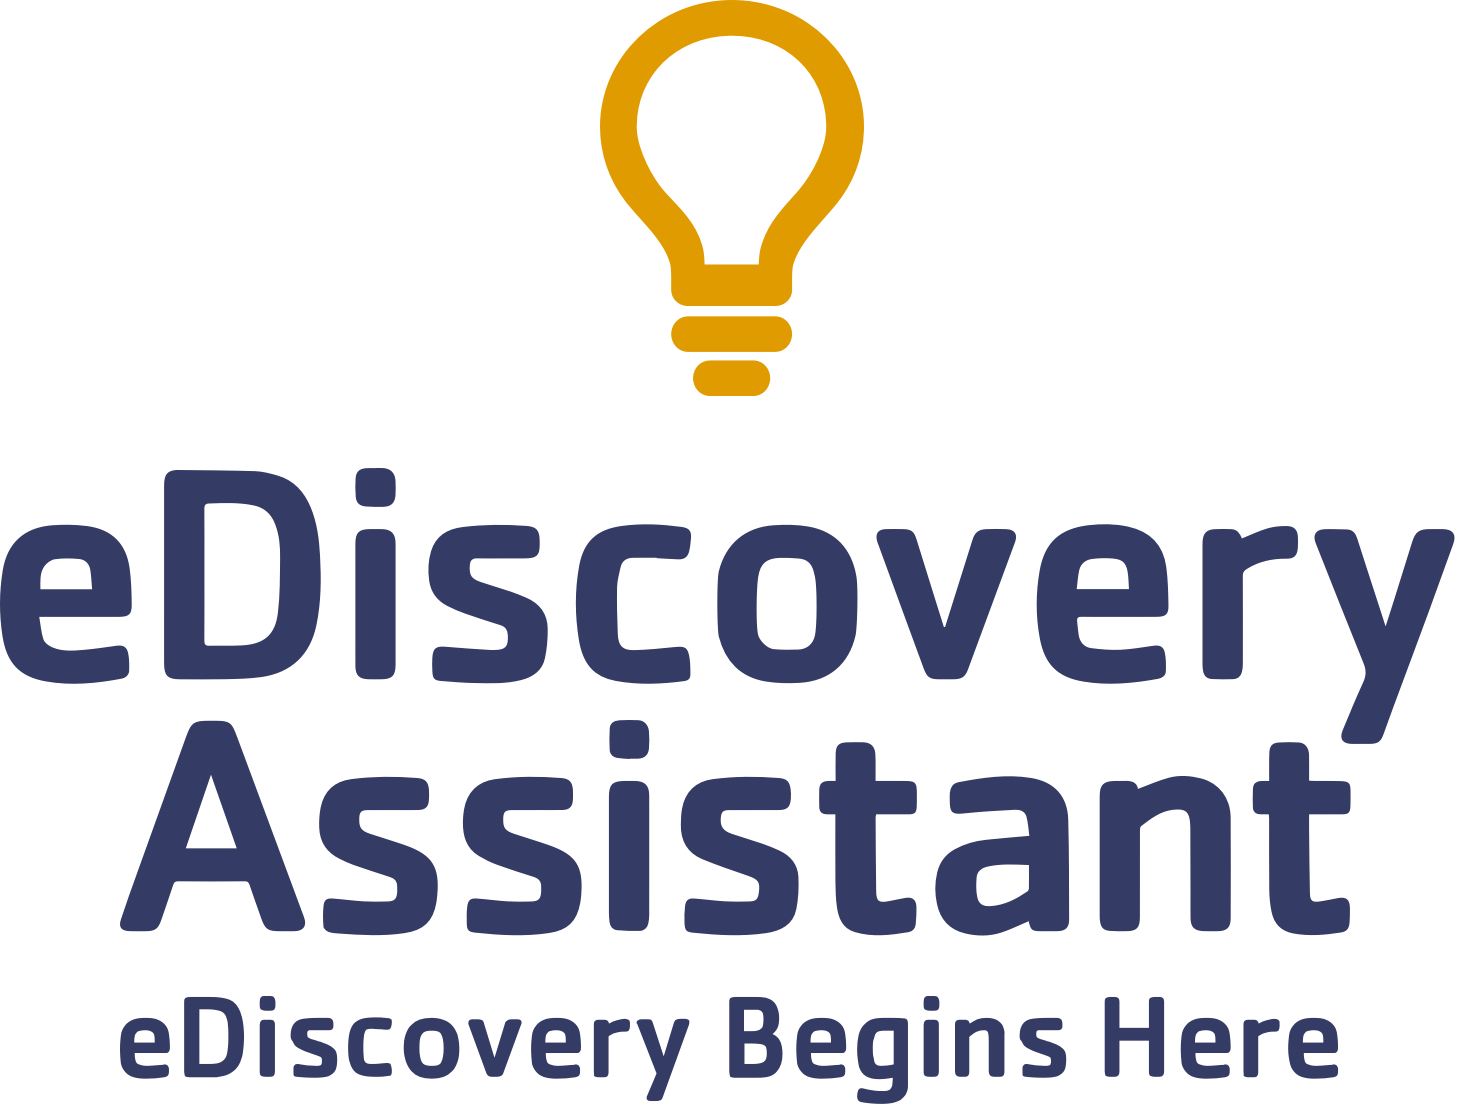 eDiscovery Assistant LLC